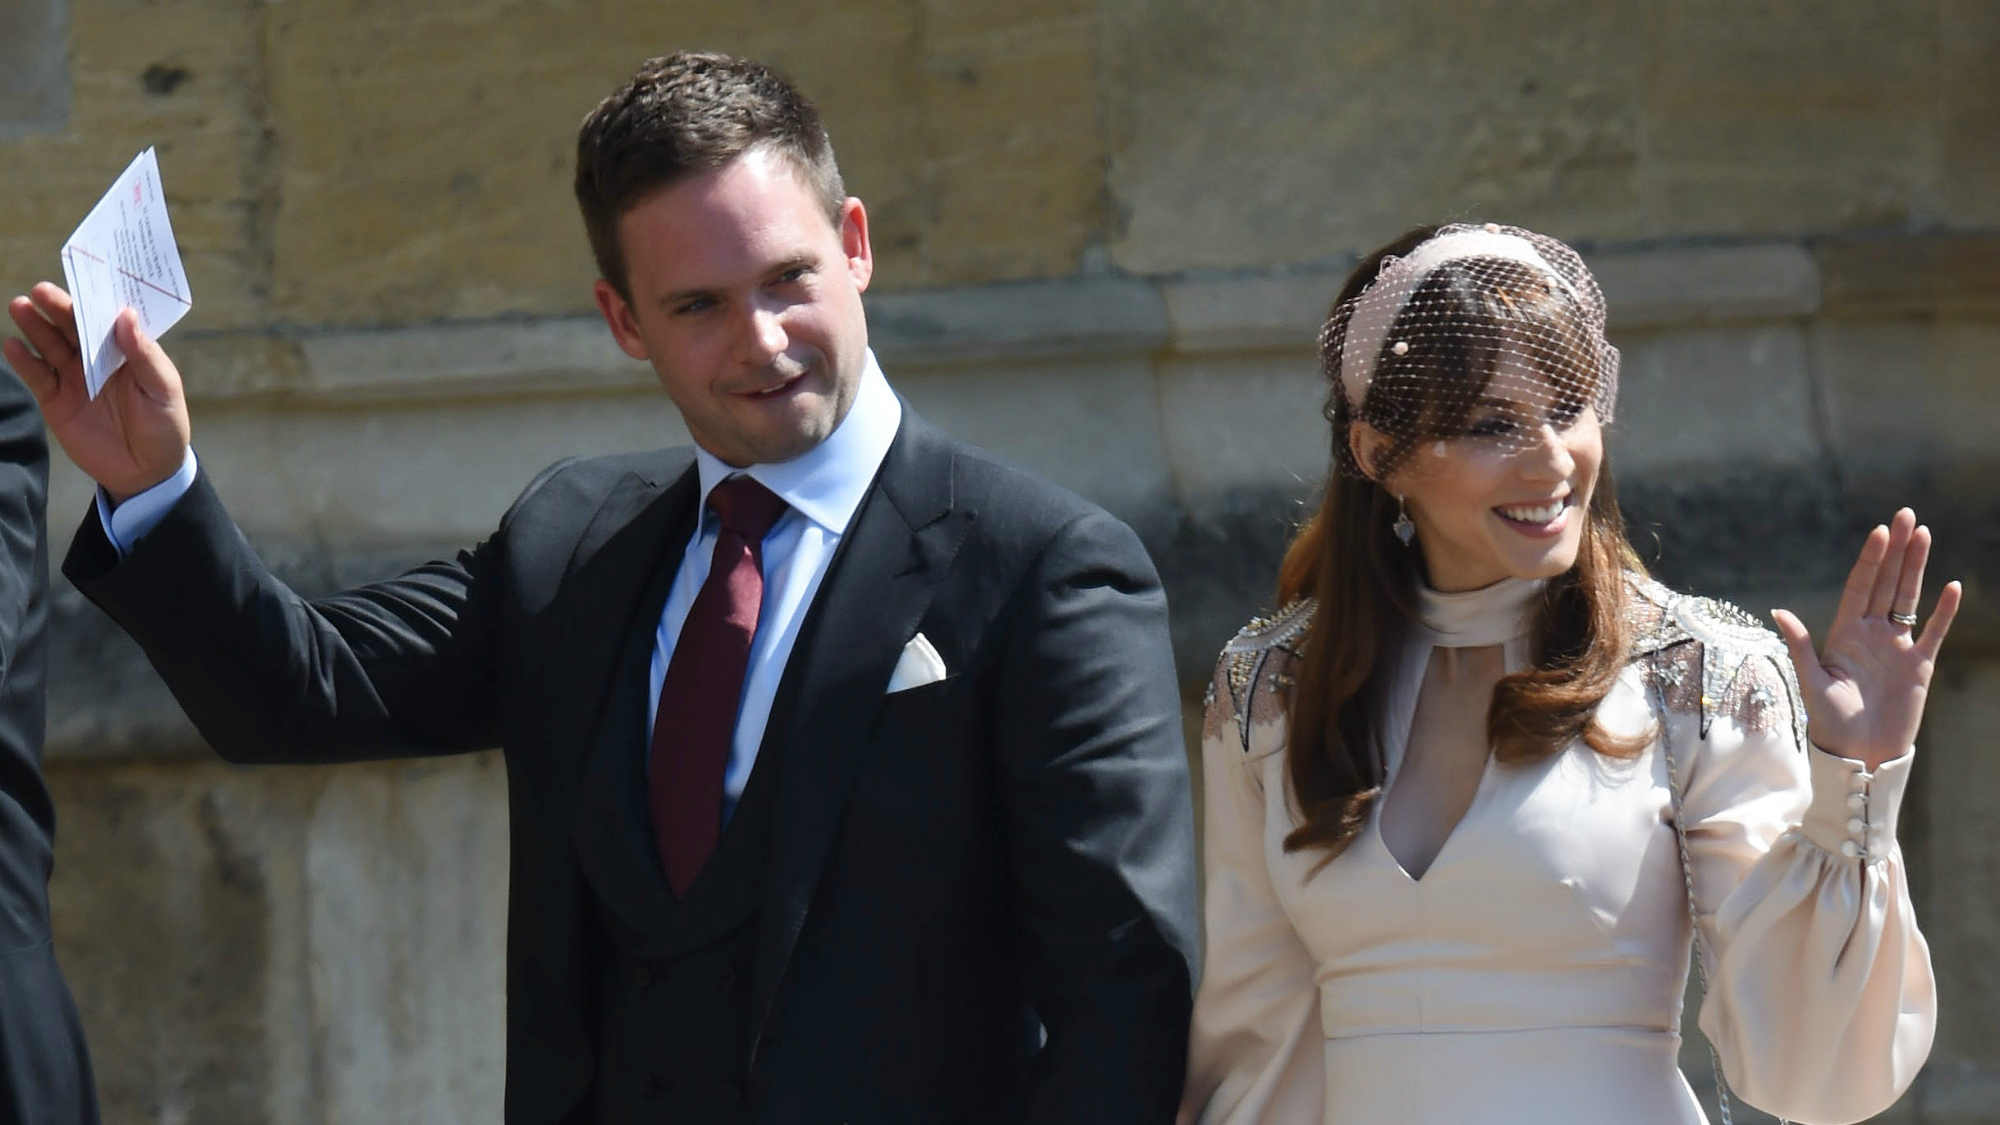 Meghans suits co star patrick j adams has apologised for the royal meghans suits co star patrick j adams has apologised for the royal wedding body shaming incident thecheapjerseys Gallery